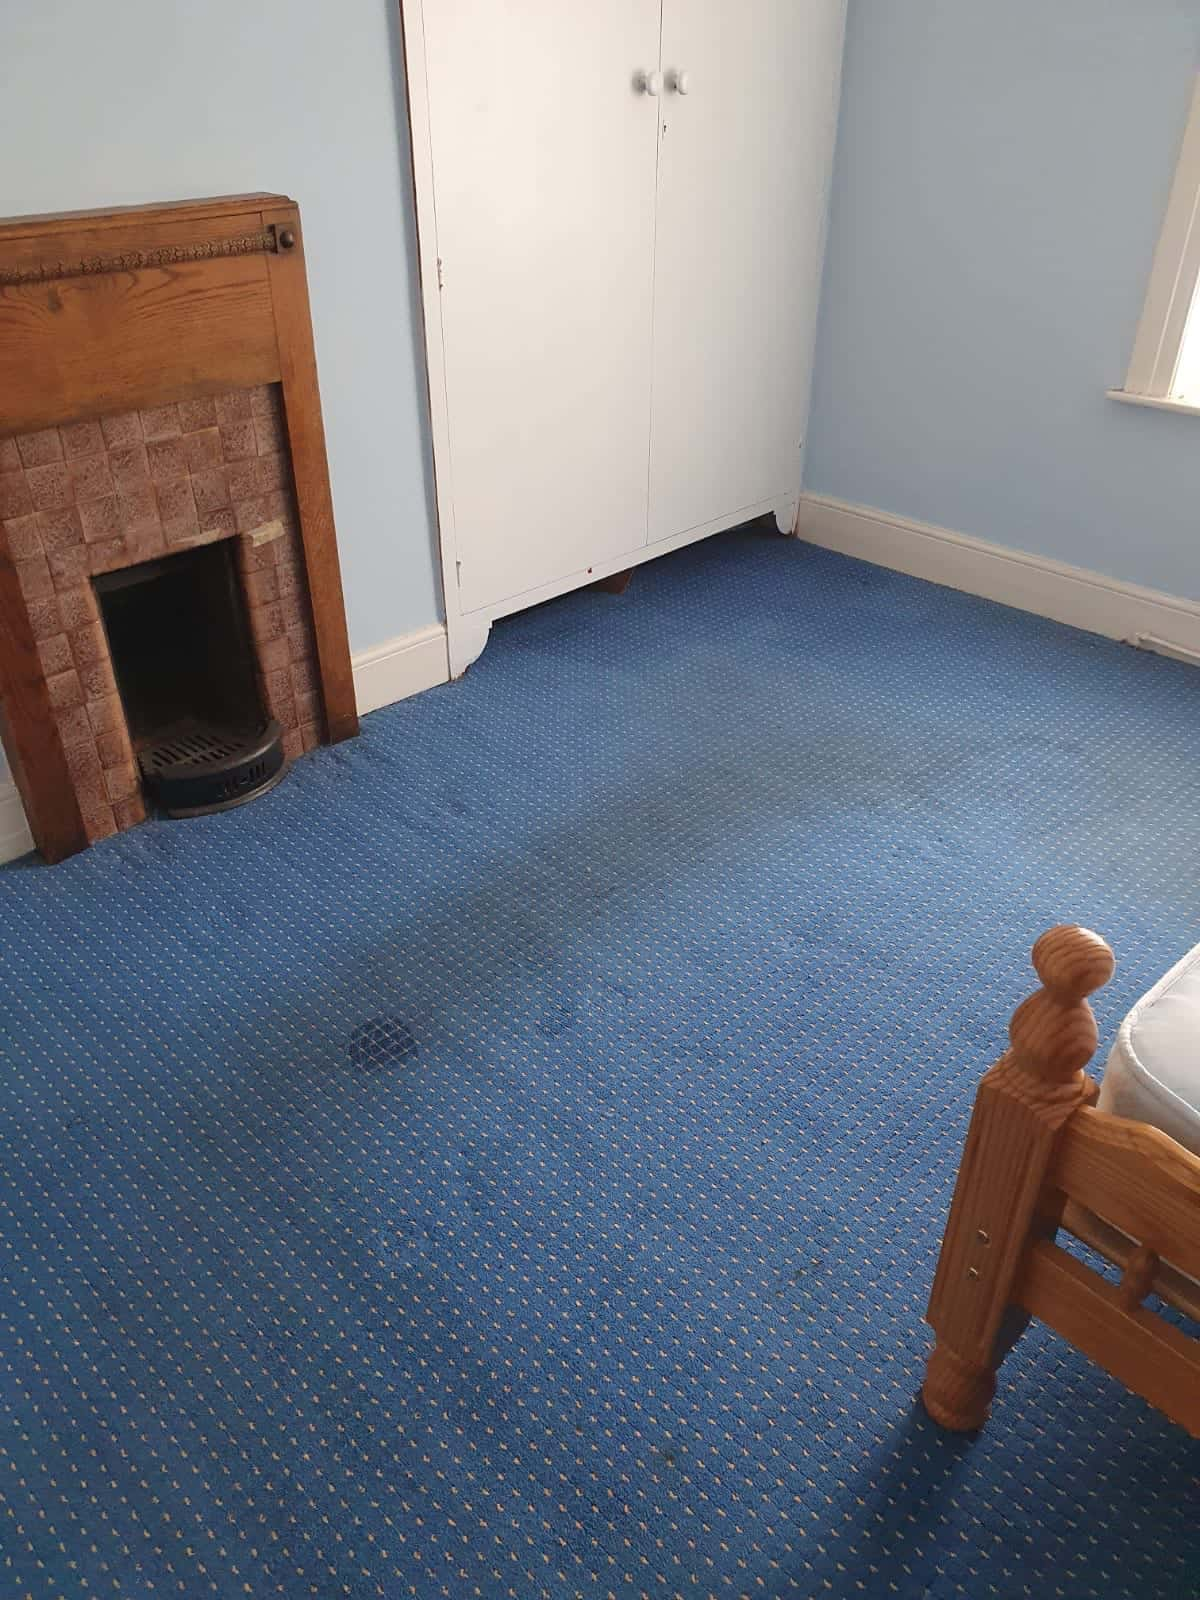 Domestic carpet cleaning image before job has been carried out